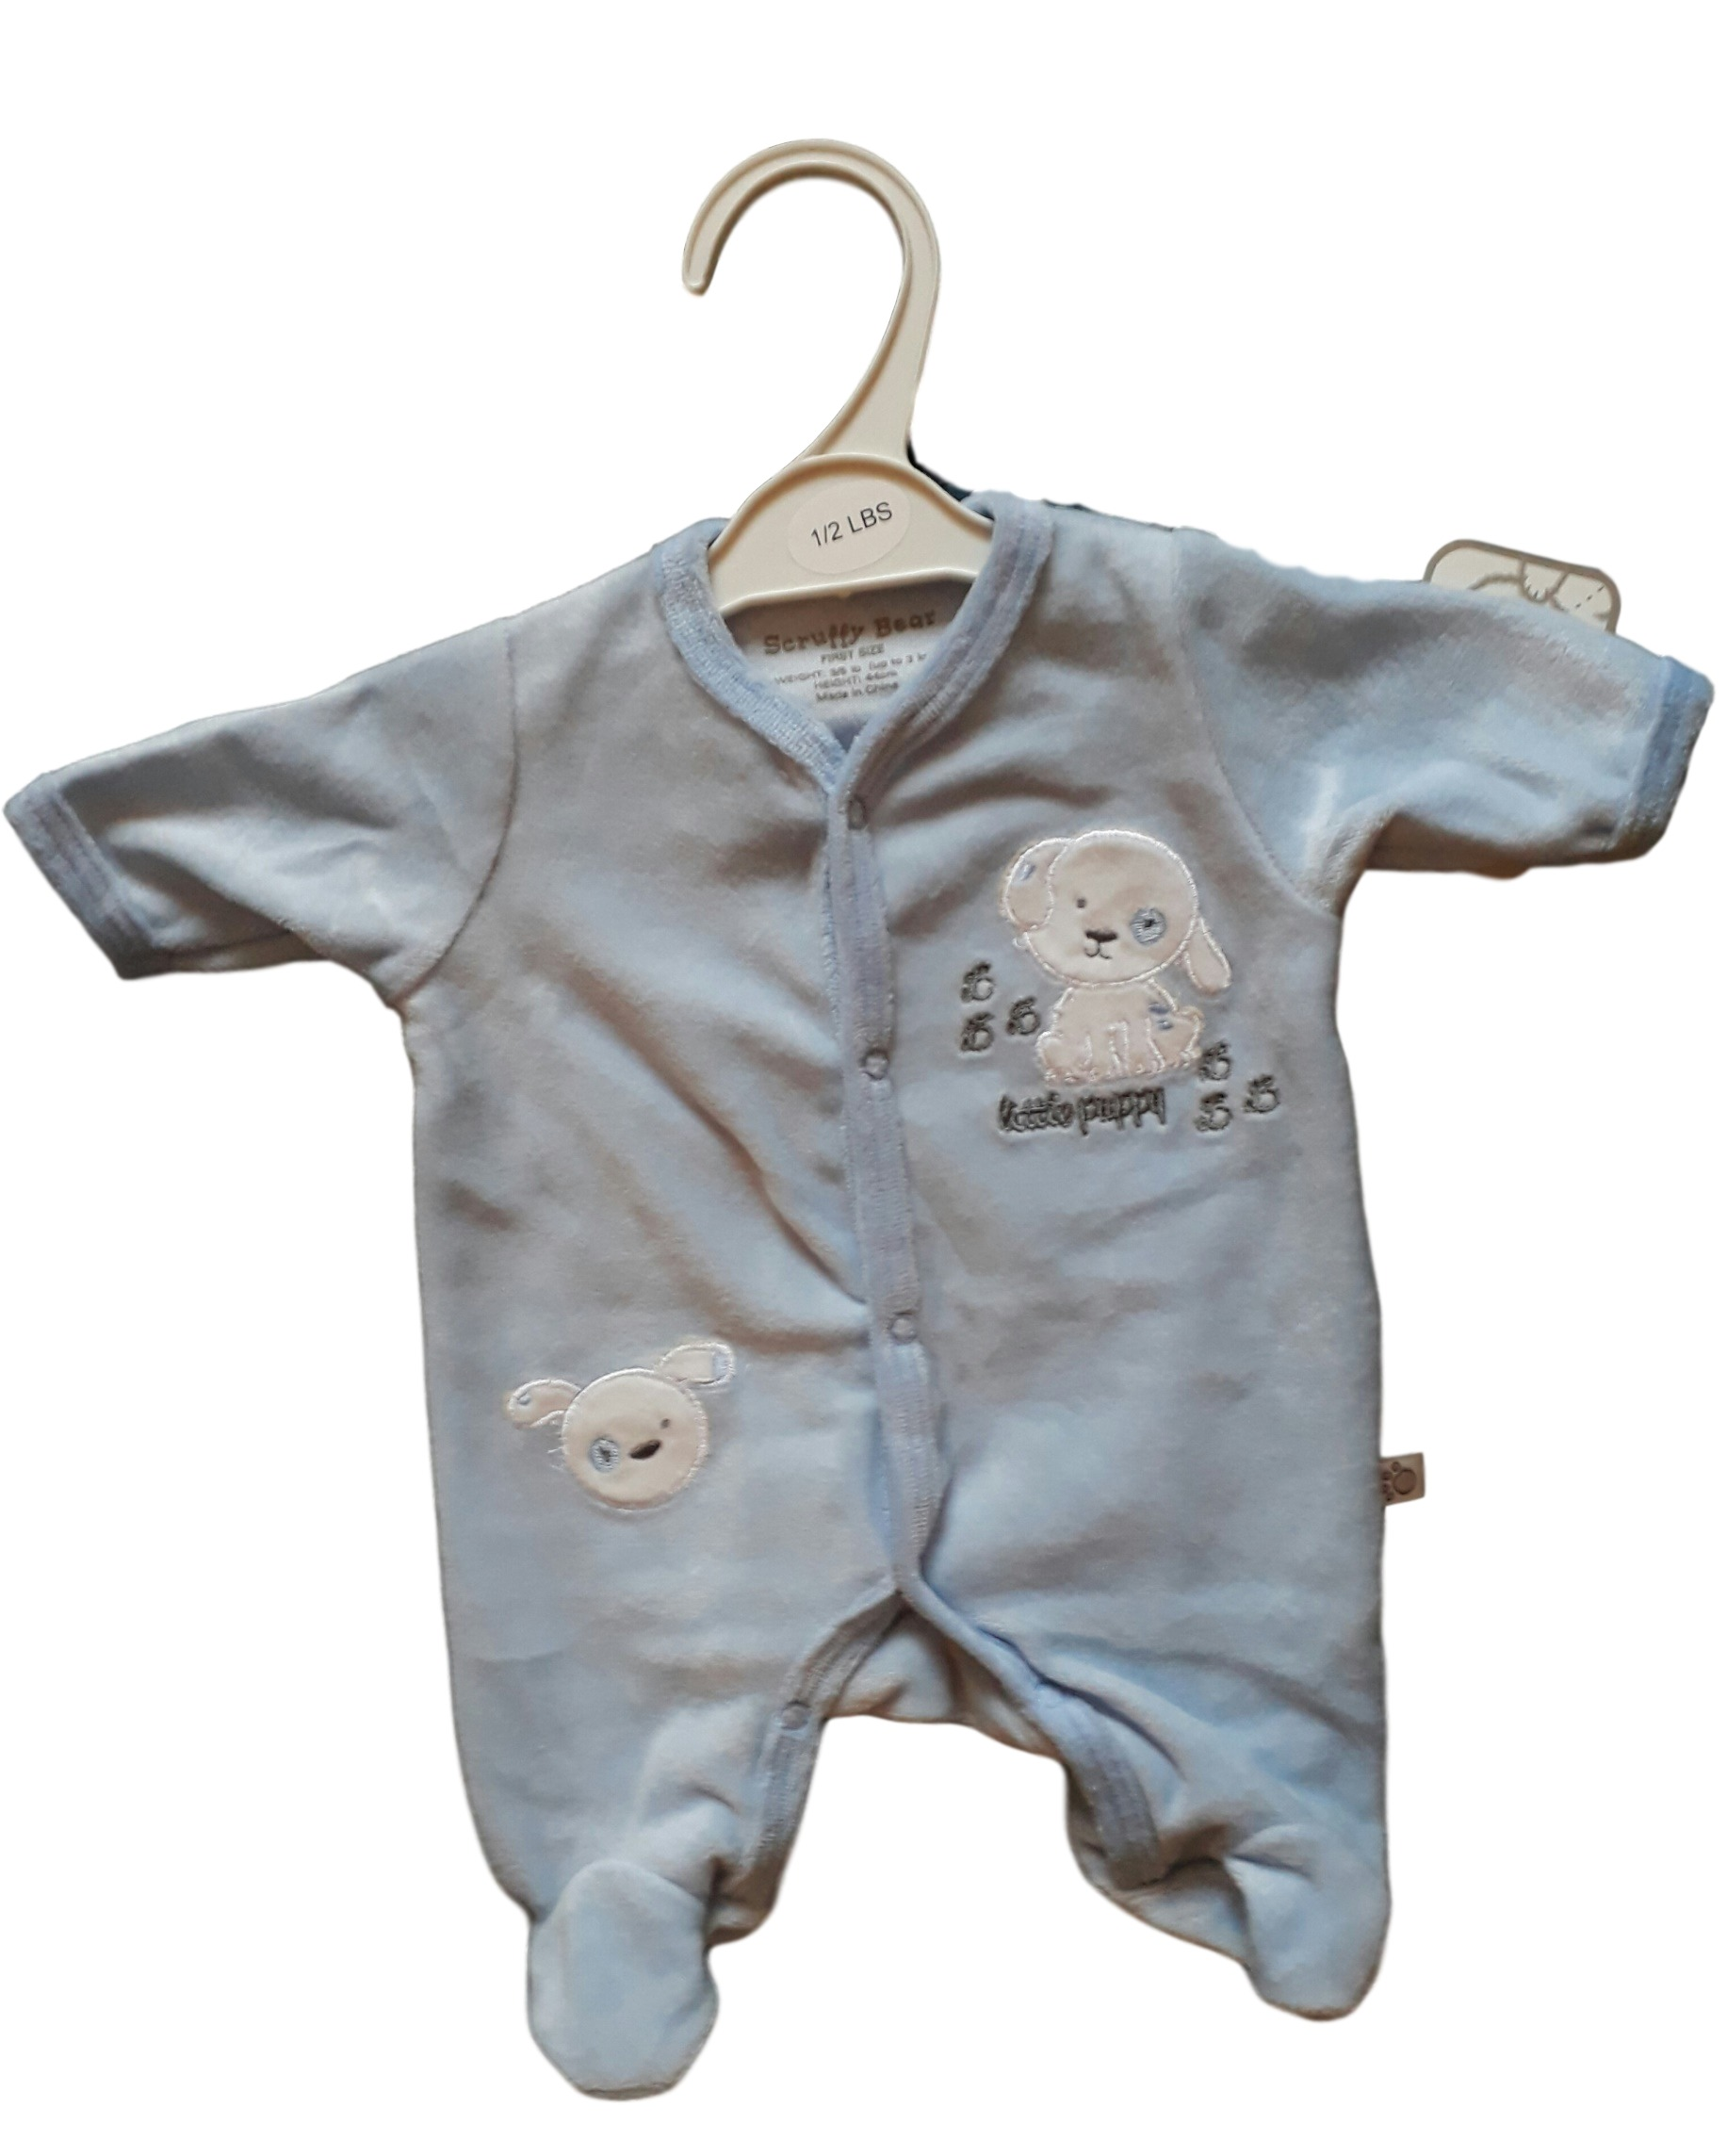 Premature baby clothes tiny babygrow velour LIL PUP BLUE WITH WHITE design all sizes